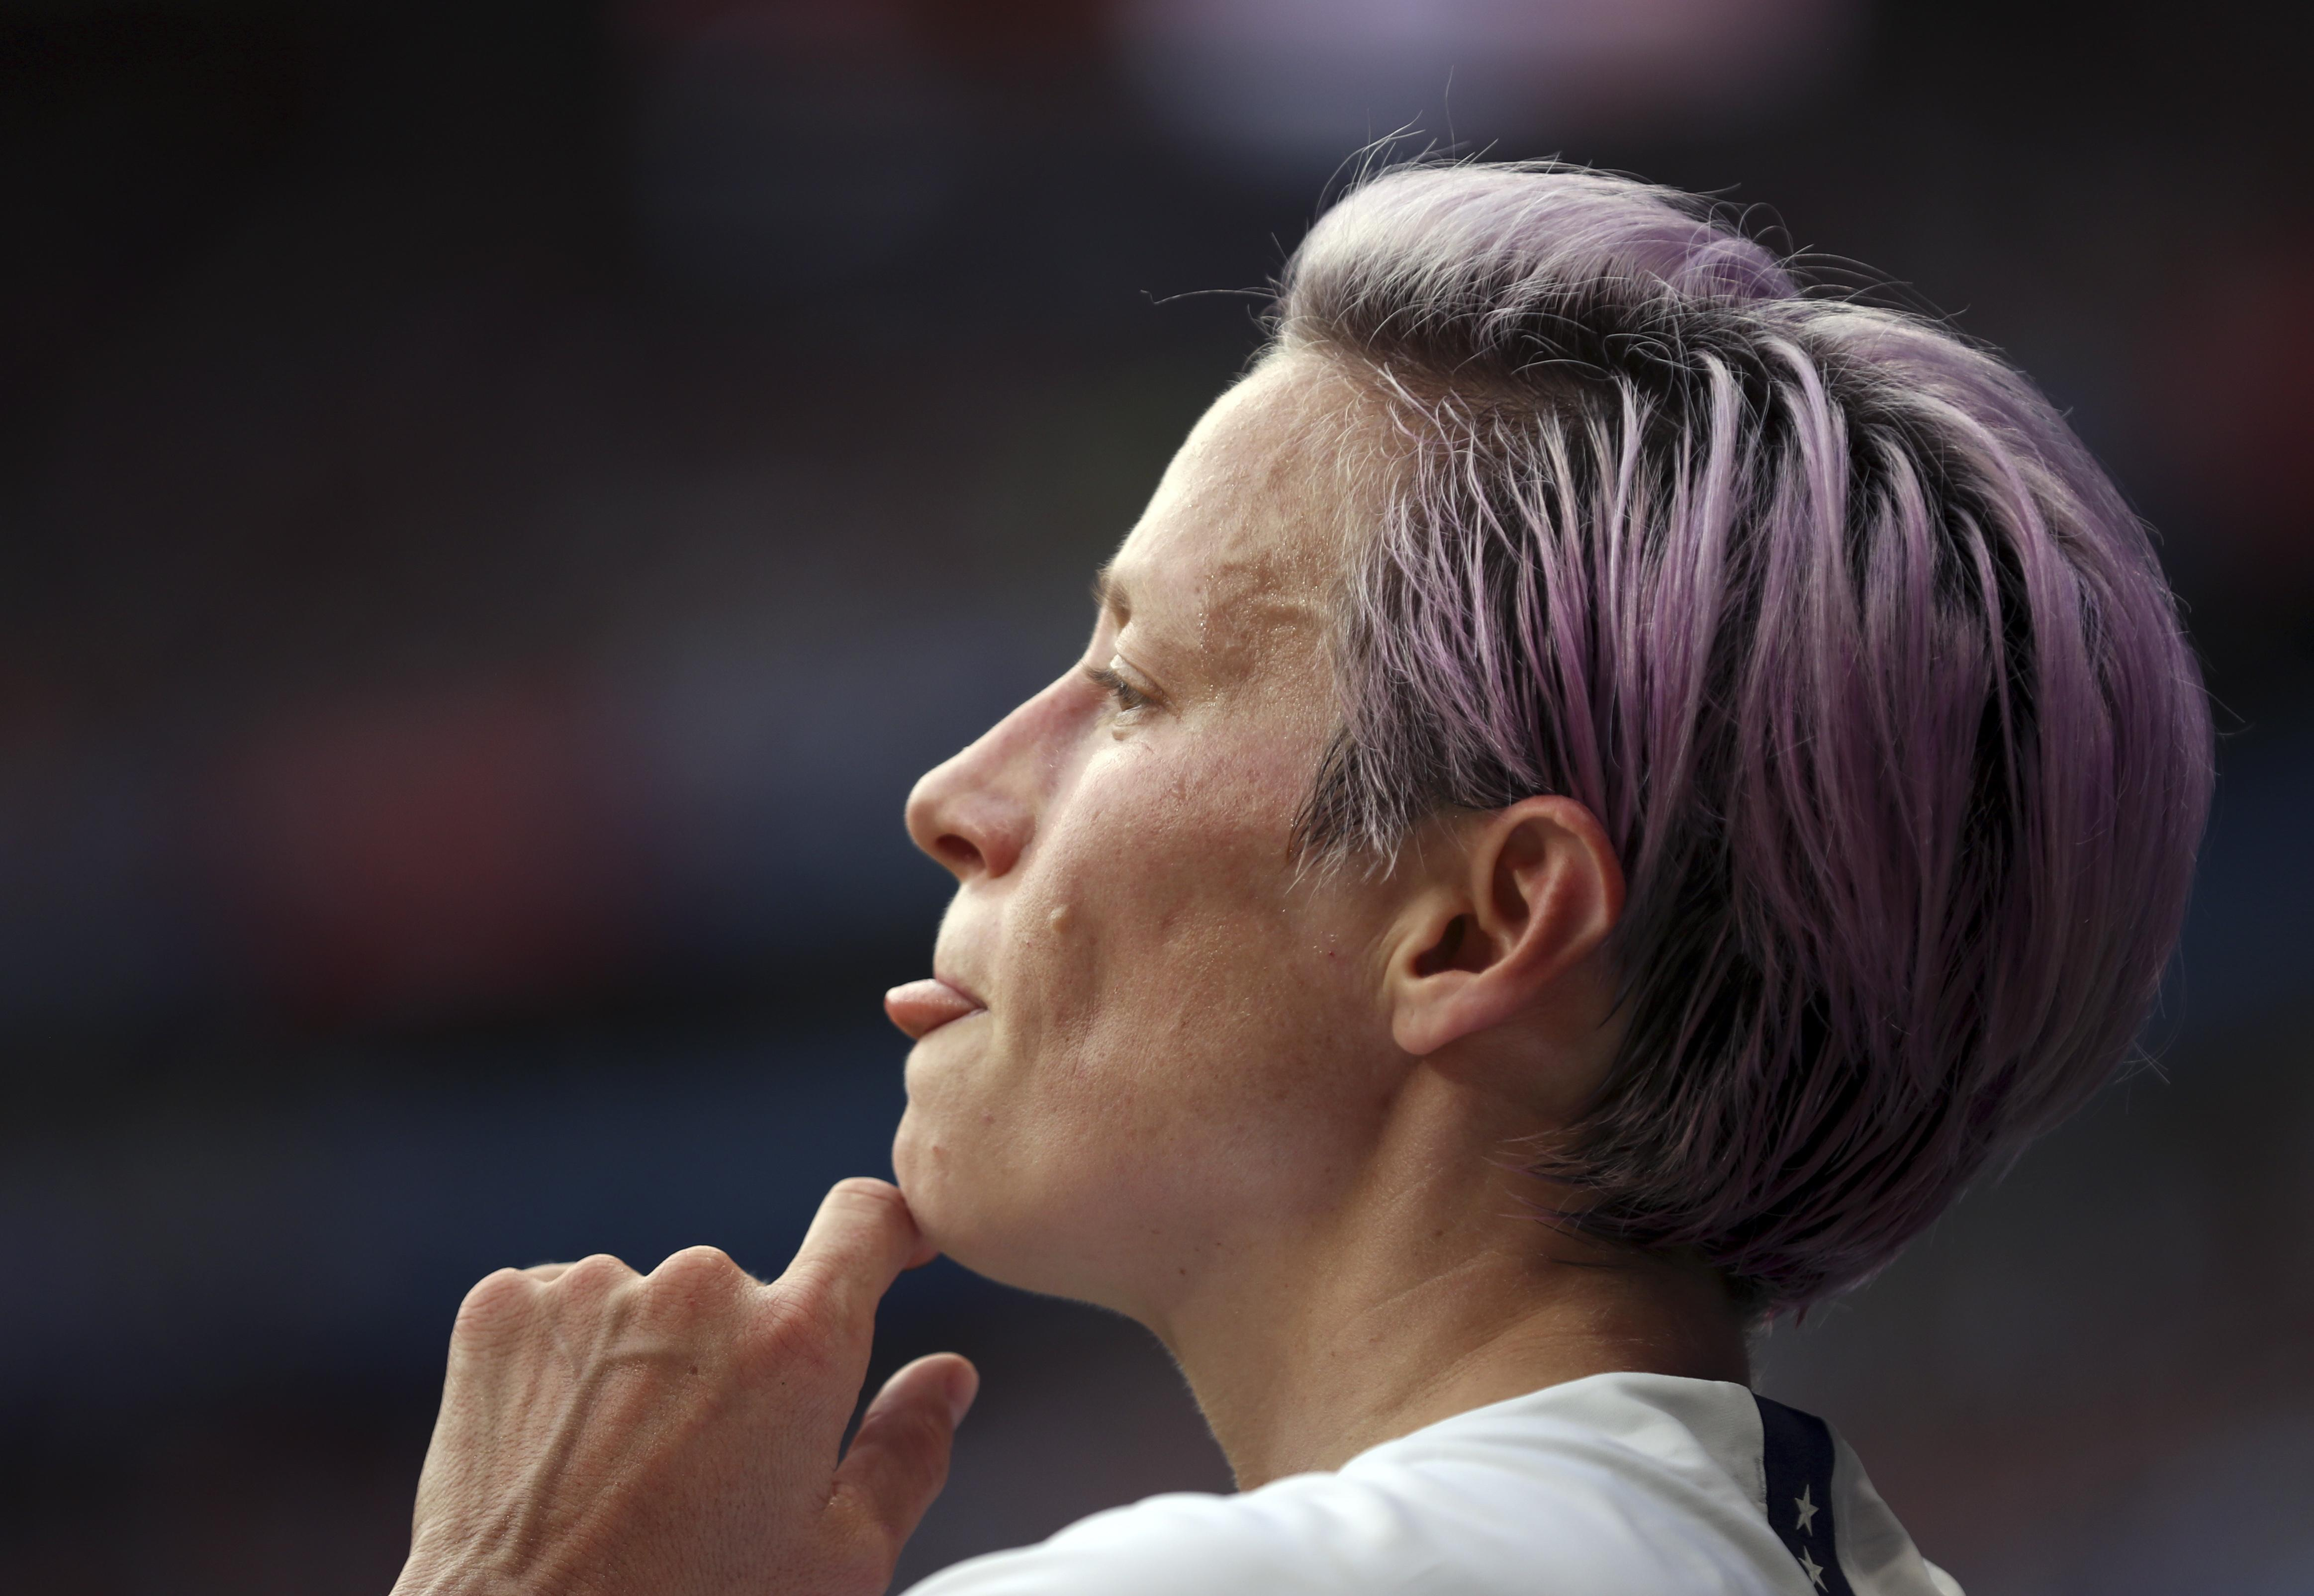 Megan Rapinoe rips parents for Trump support, watching Fox: 'Go to therapy'